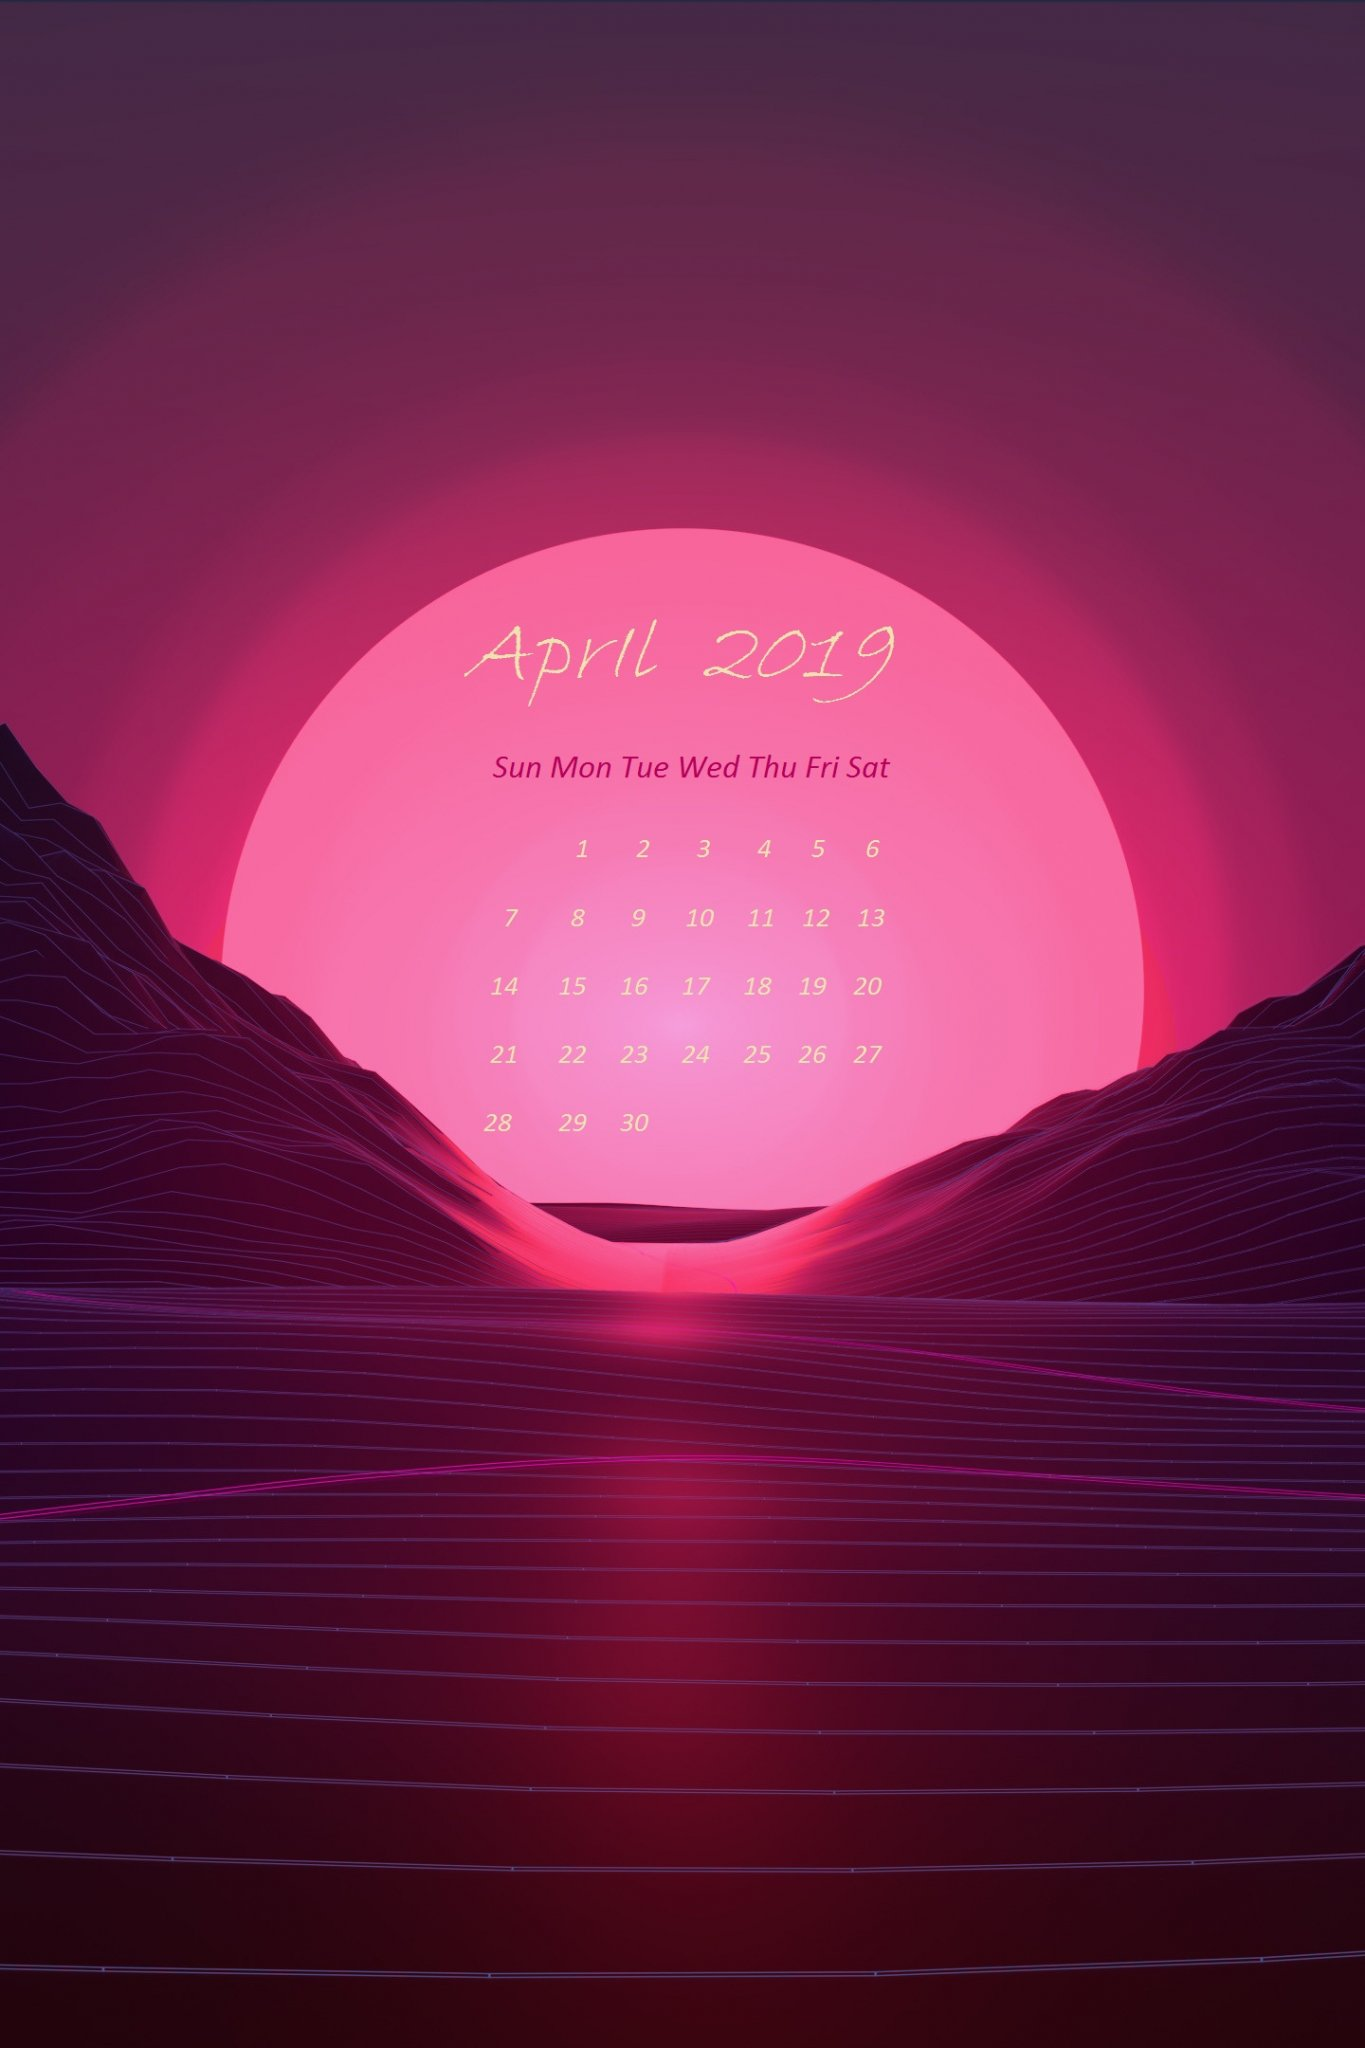 April 2019 Pink Beautifull Moon iPhone Calendar Wallpaper